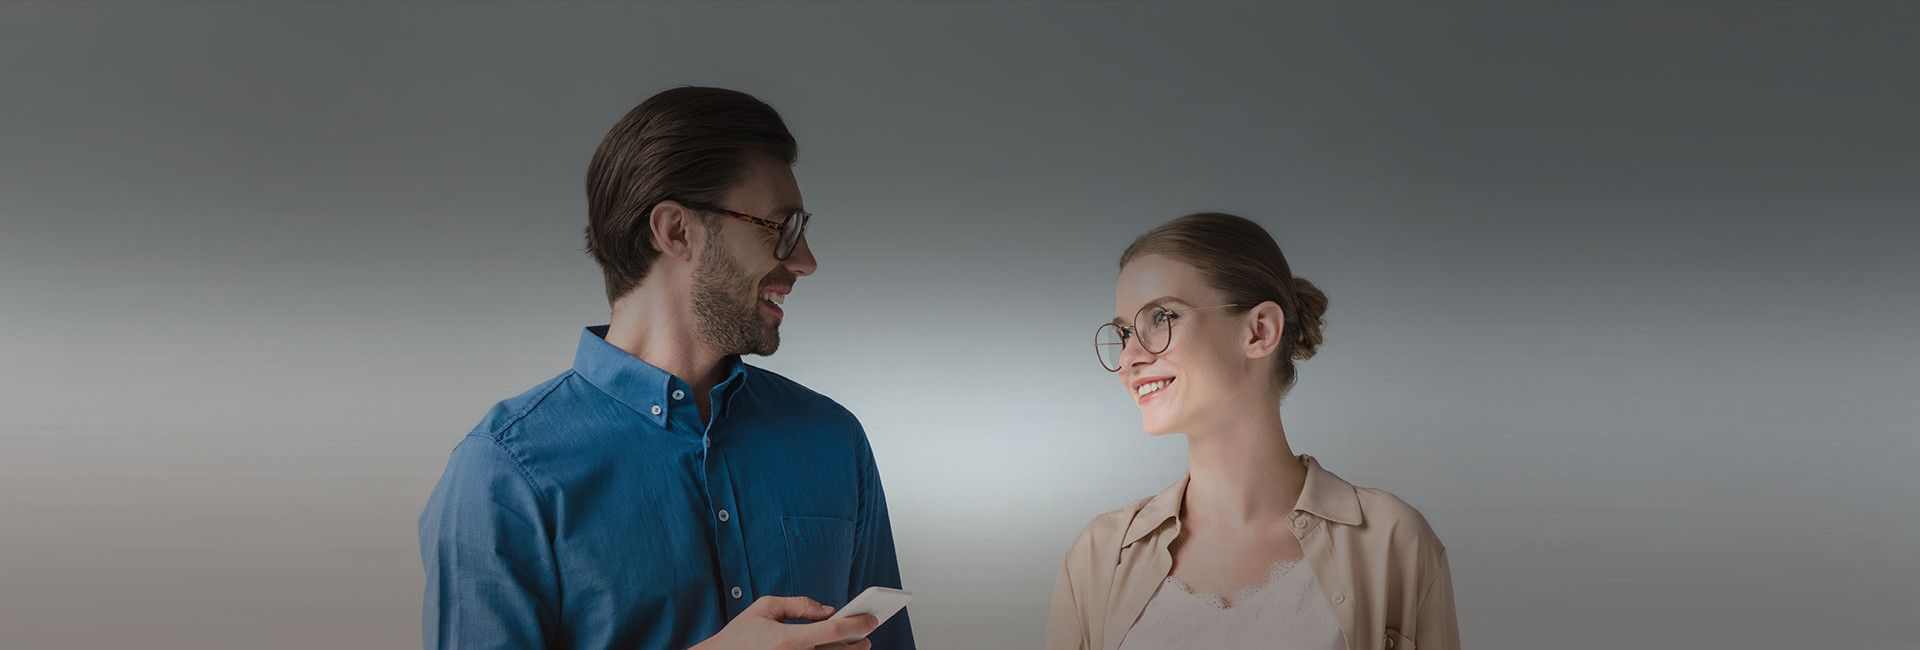 couple in eyeglasses